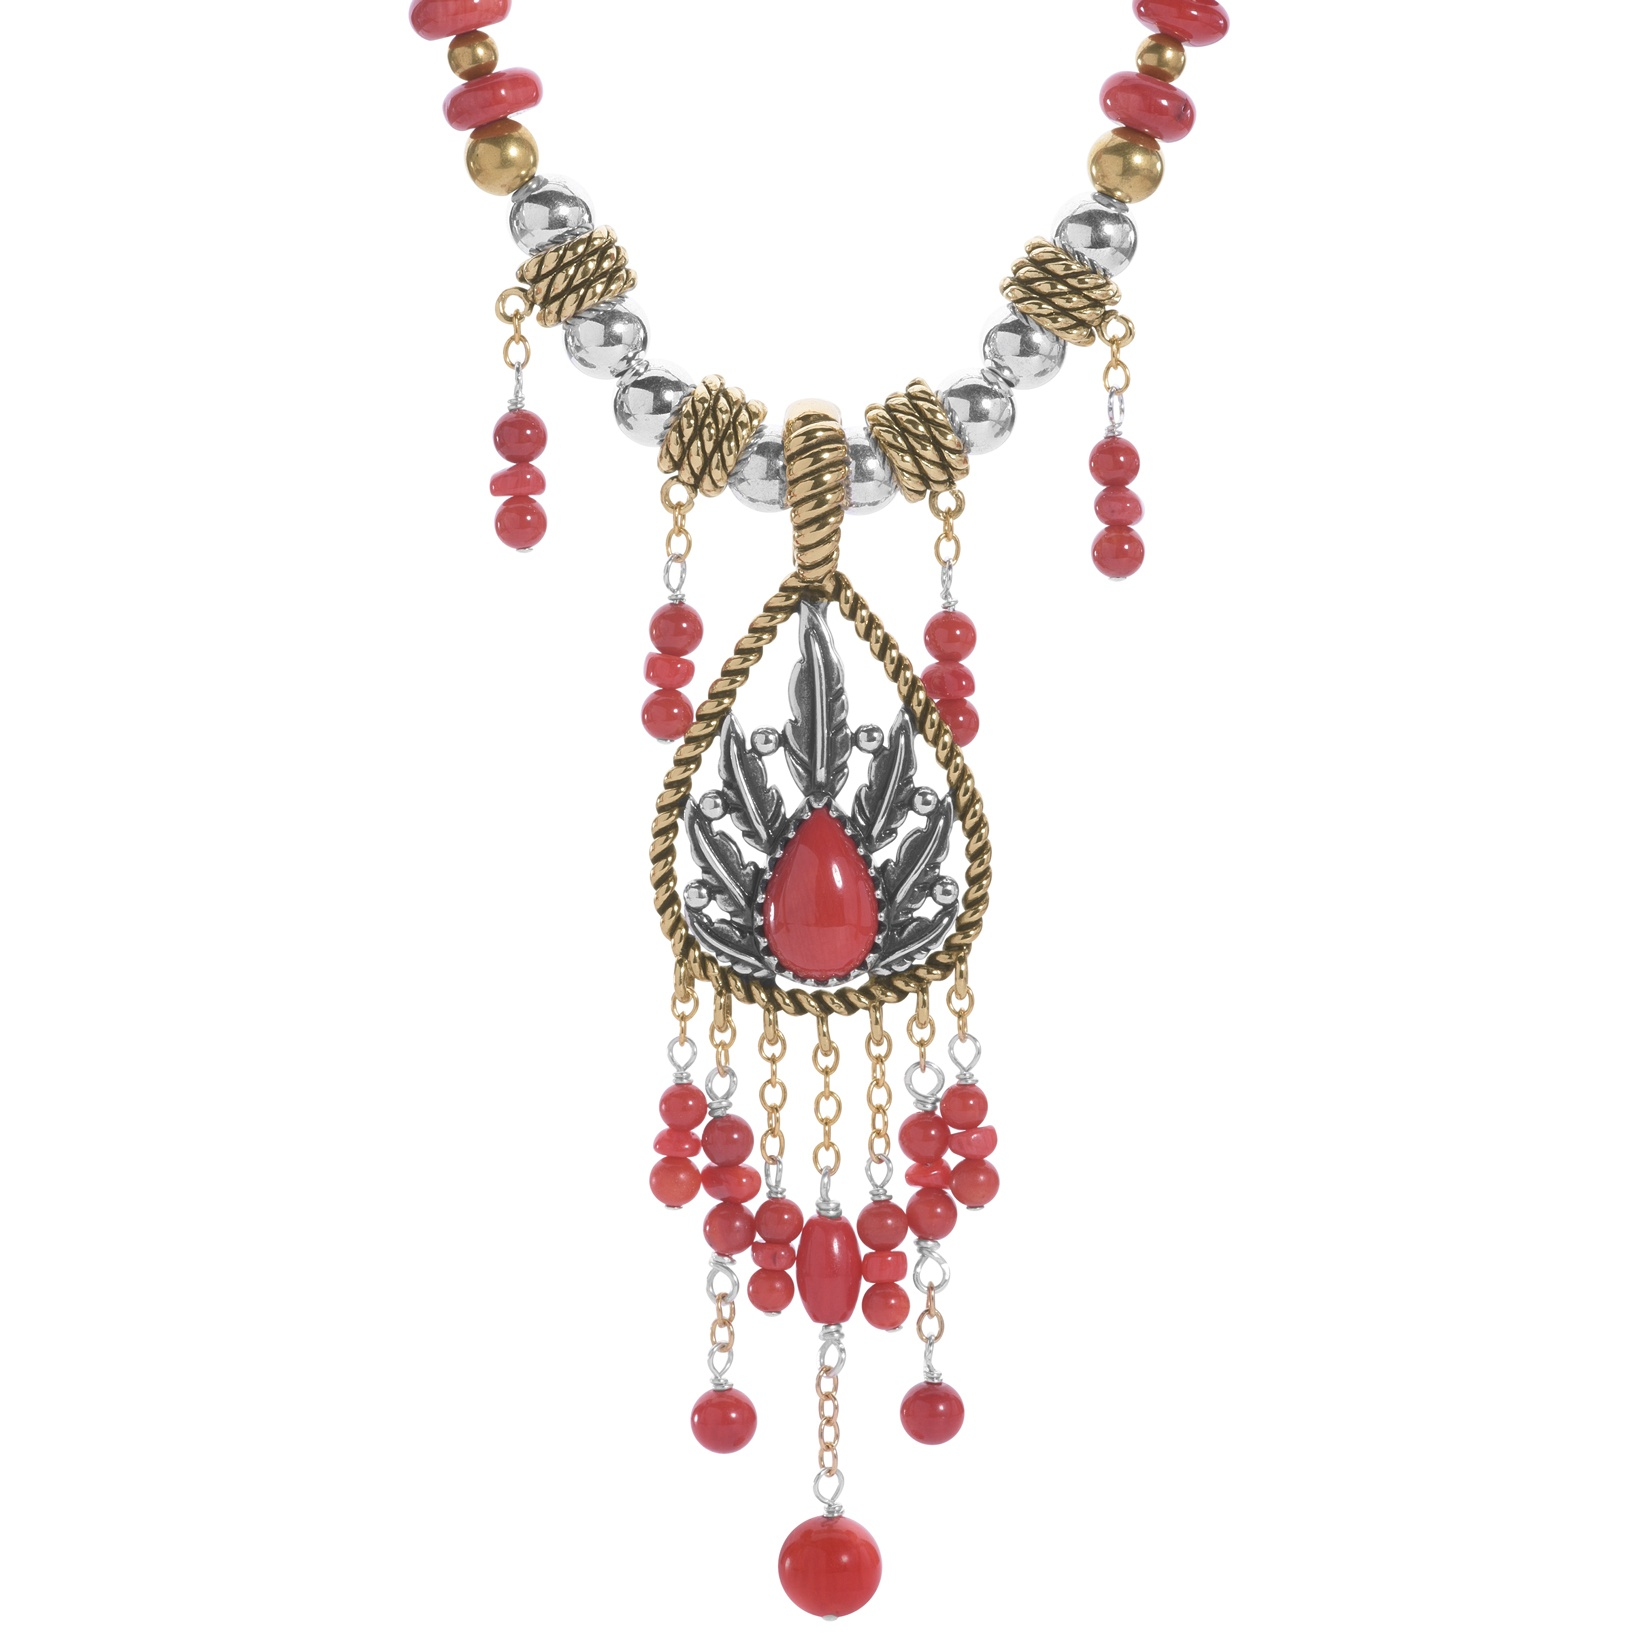 Classics Mixed Metal and Red Coral Enhancer on Beaded Necklace